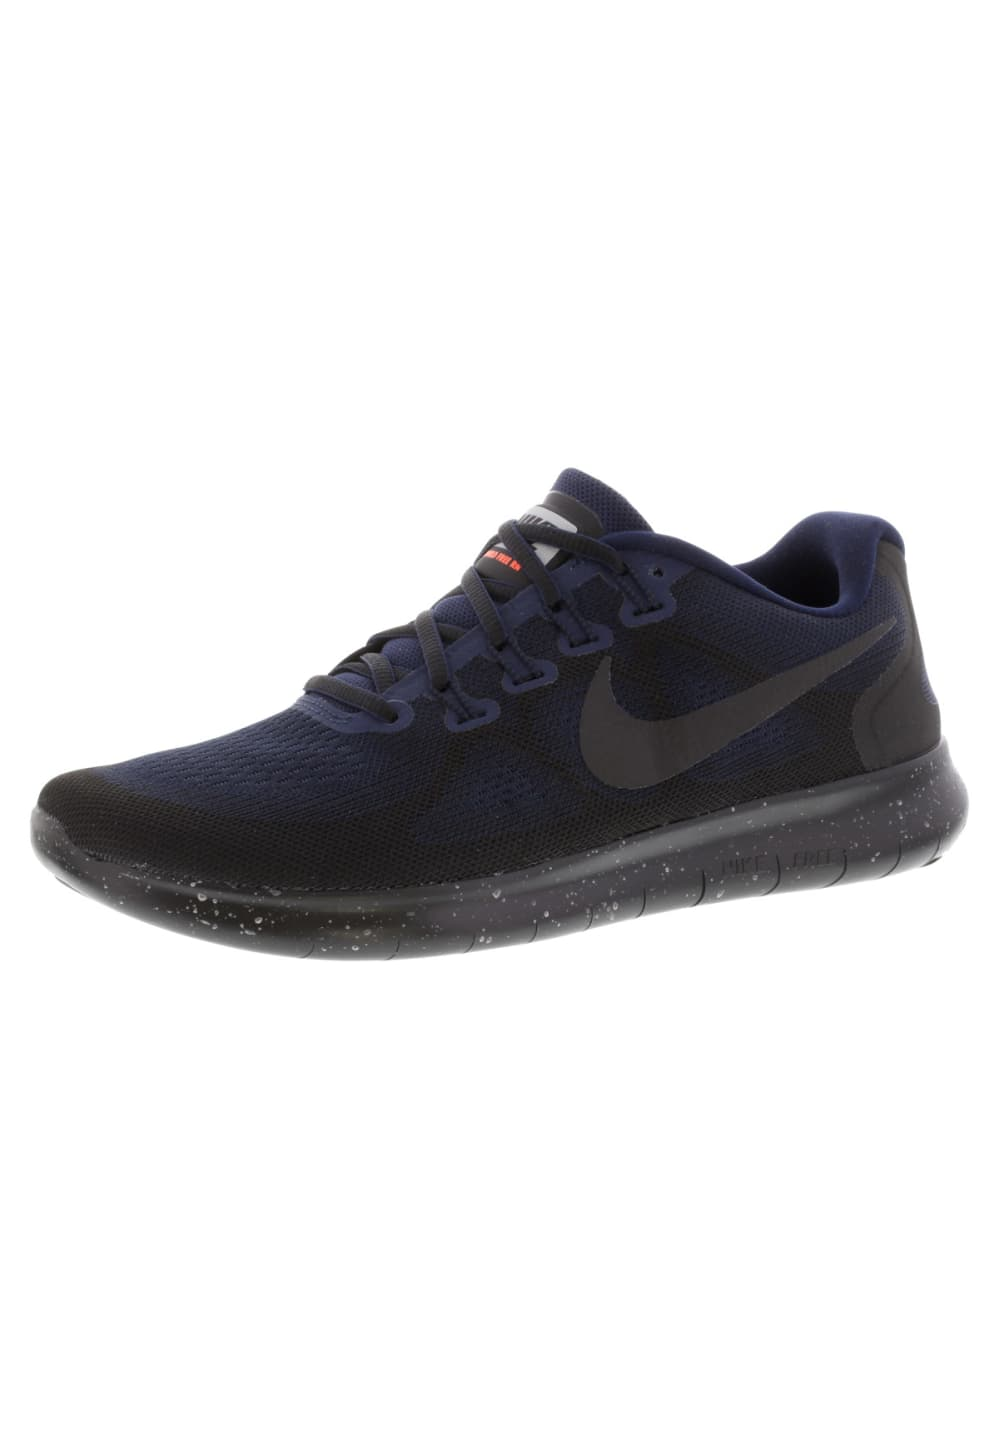 Nike Chaussures Noir Pour Homme Running 2017 Free Rn Shield 3lTuJK1cF